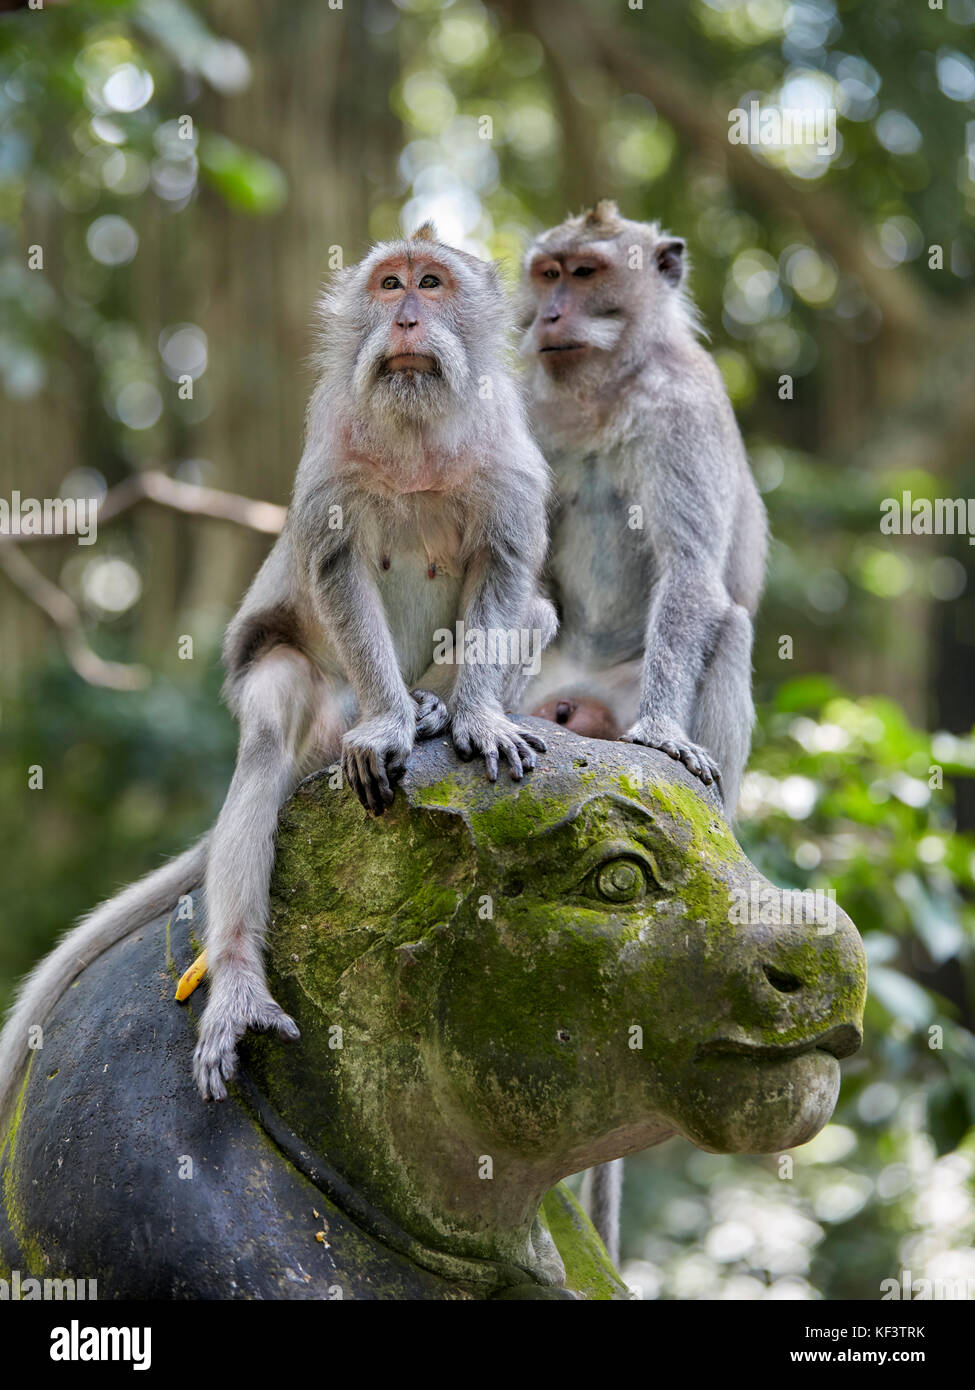 Long-tailed macaques (Macaca fascicularis) in the Sacred Monkey Forest Sanctuary. Ubud, Bali, Indonesia. - Stock Image